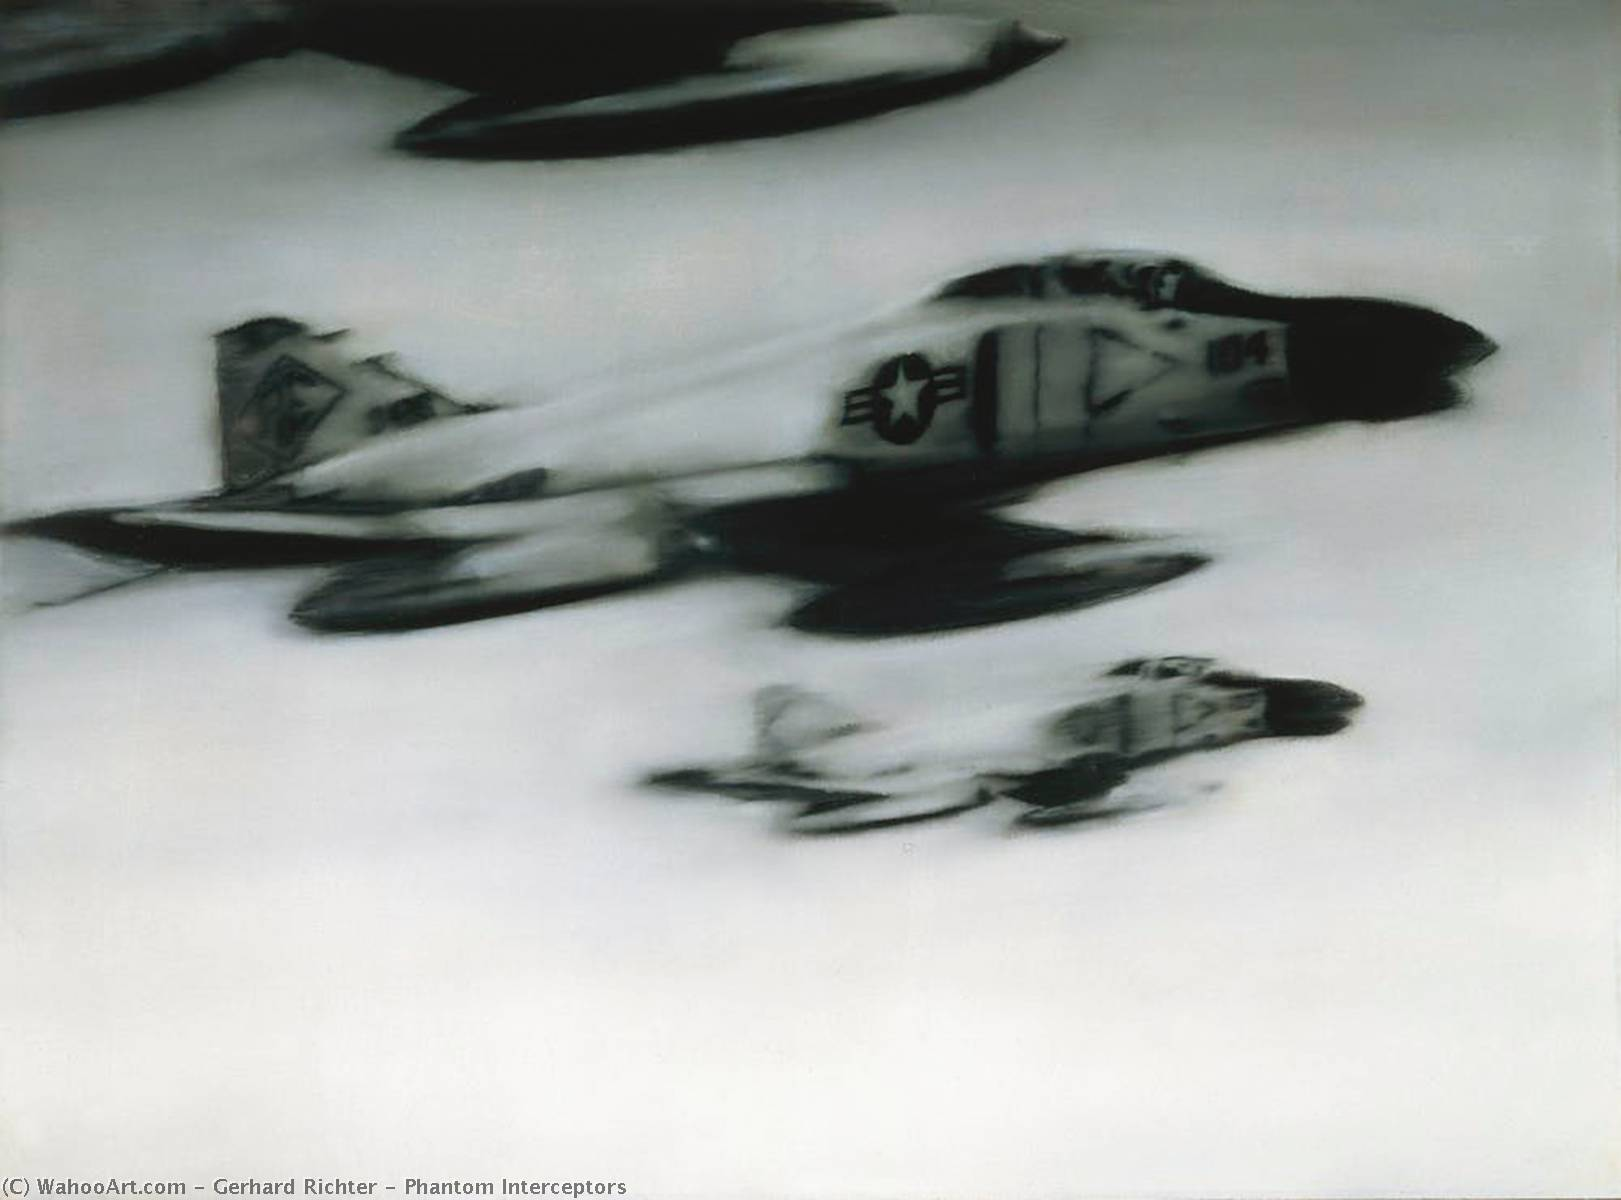 Intercettori Phantom, 1964 di Gerhard Richter